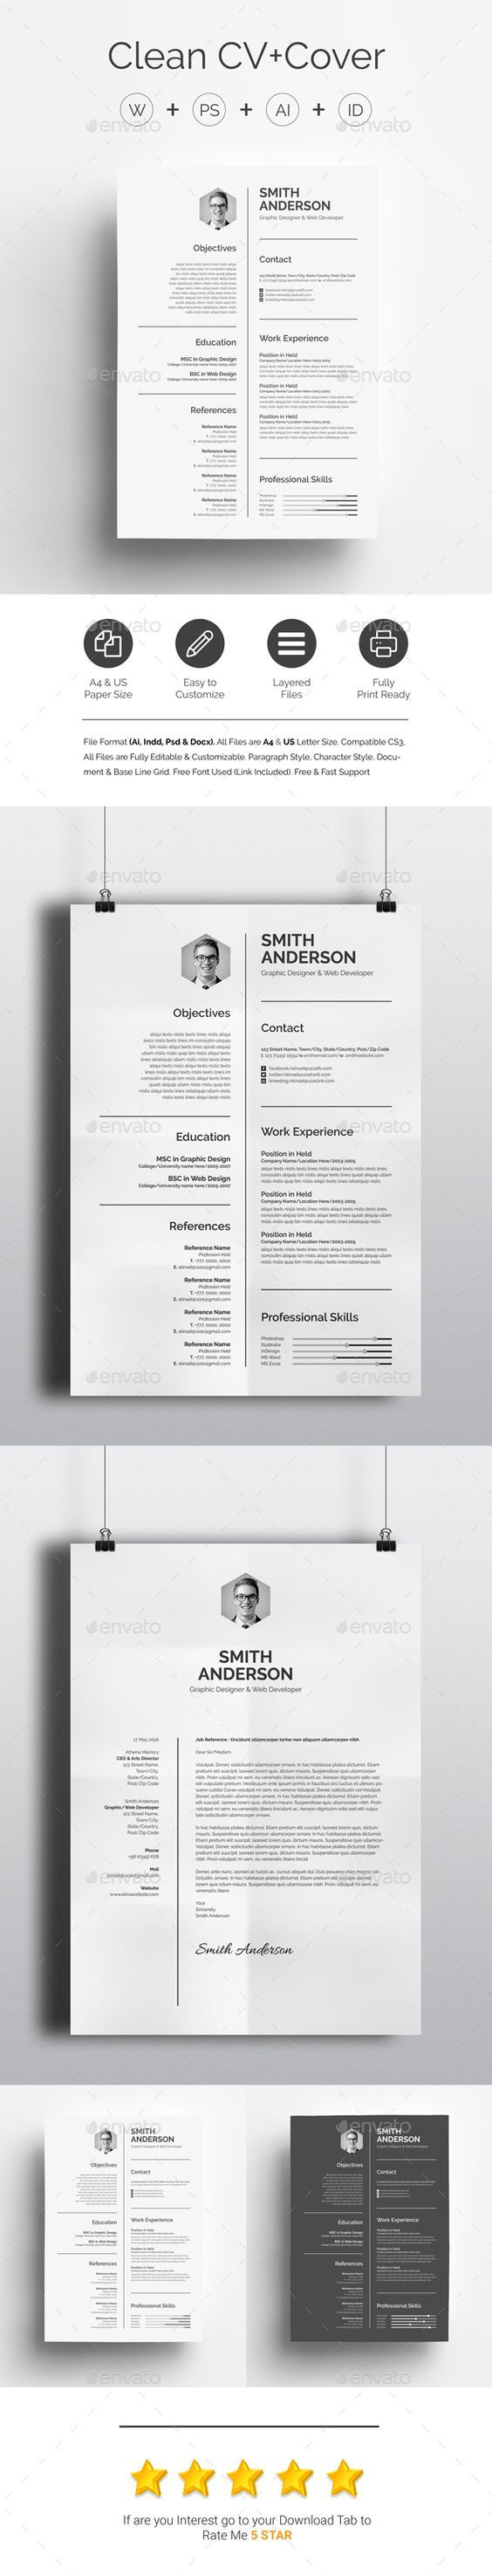 best ideas about professional cv examples resume professional modern resume template for ms word cv template for word resume template for word editable instant digital